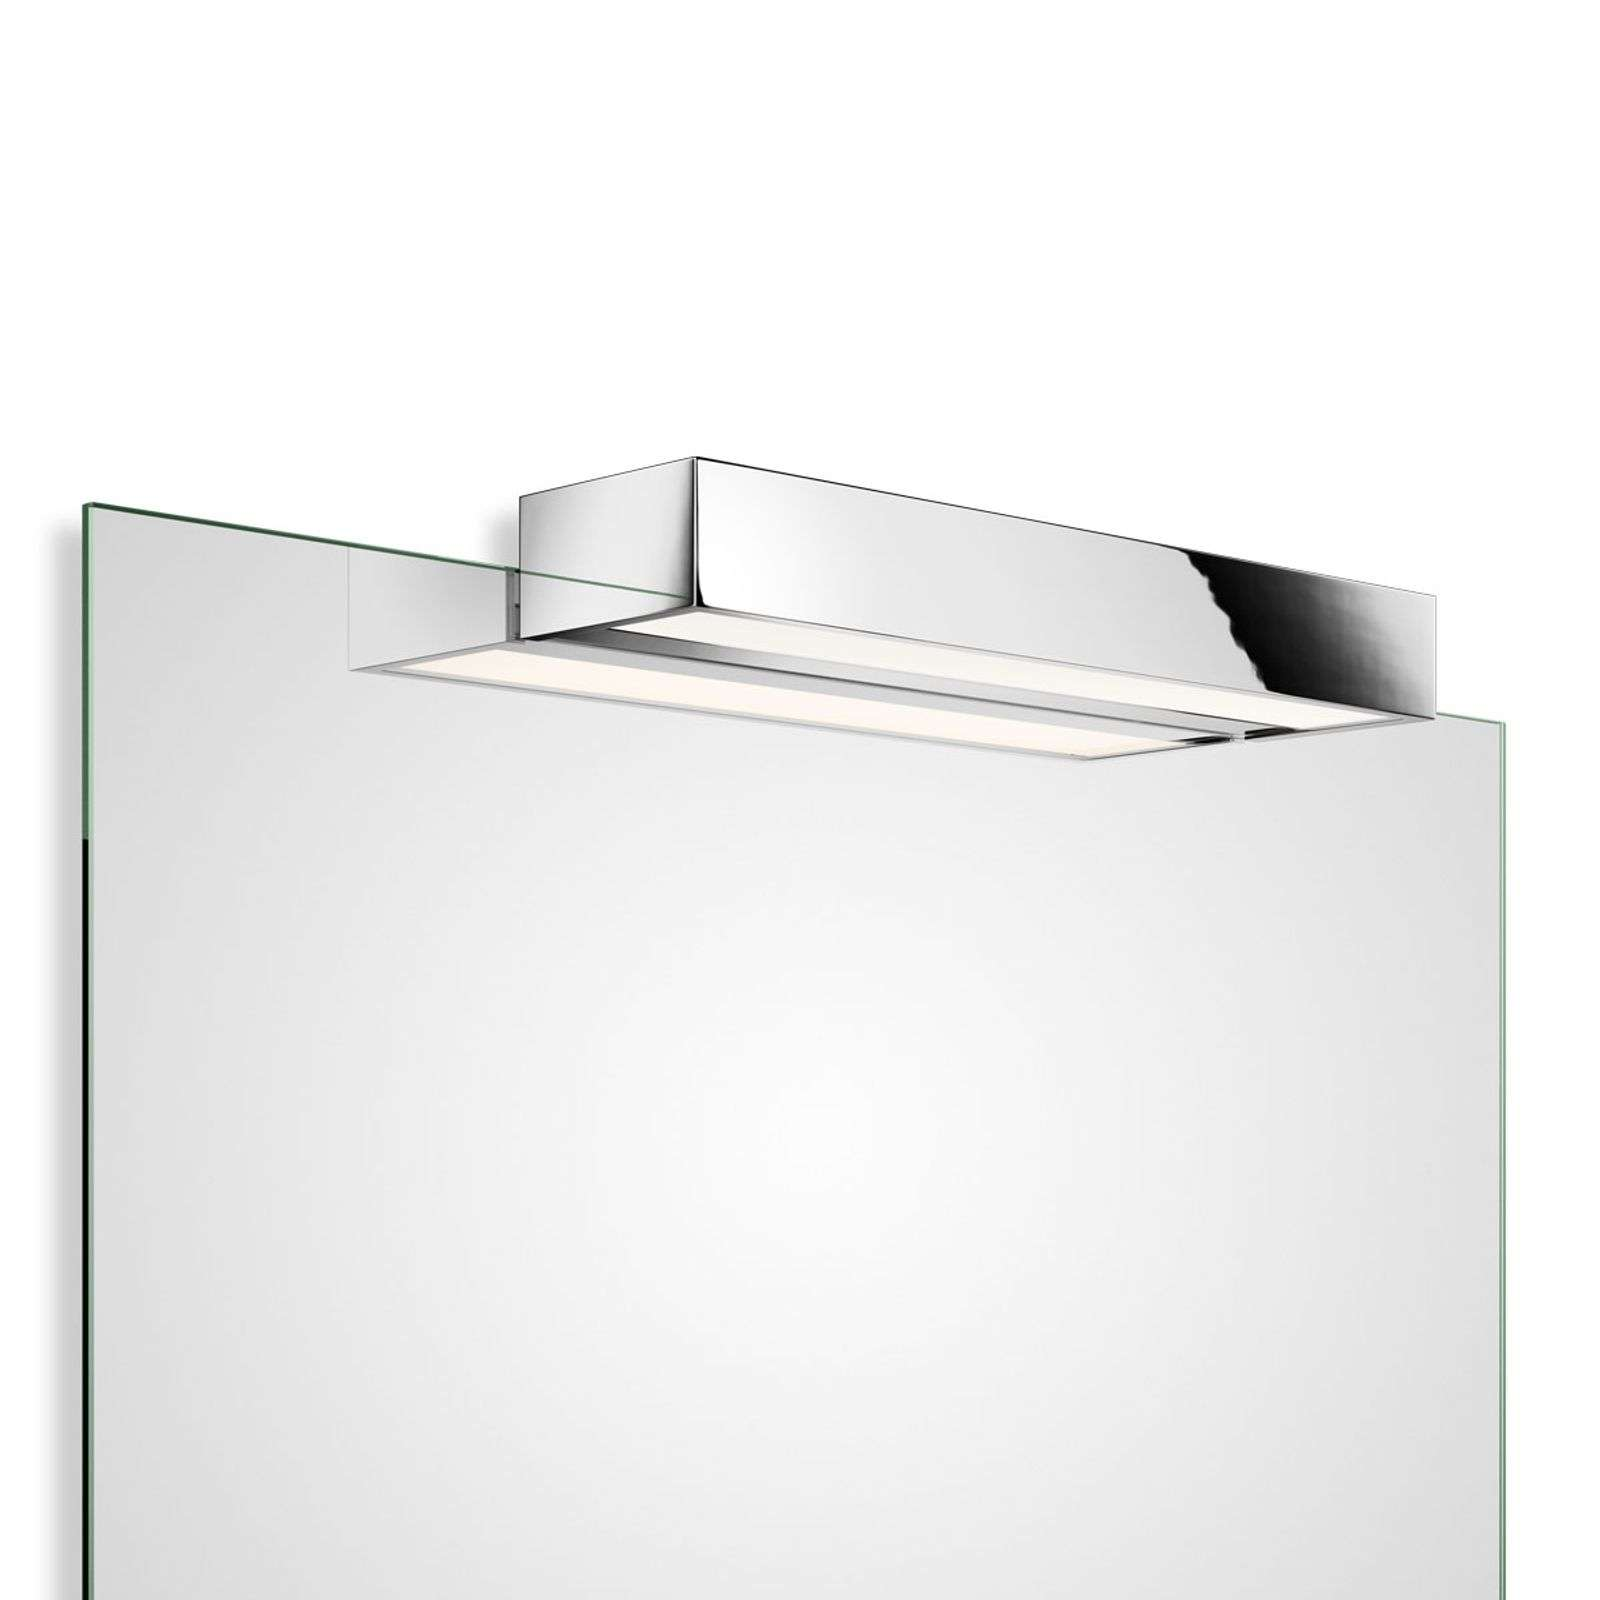 Decor Walther Box 1-40 N applique miroir LED 3000K